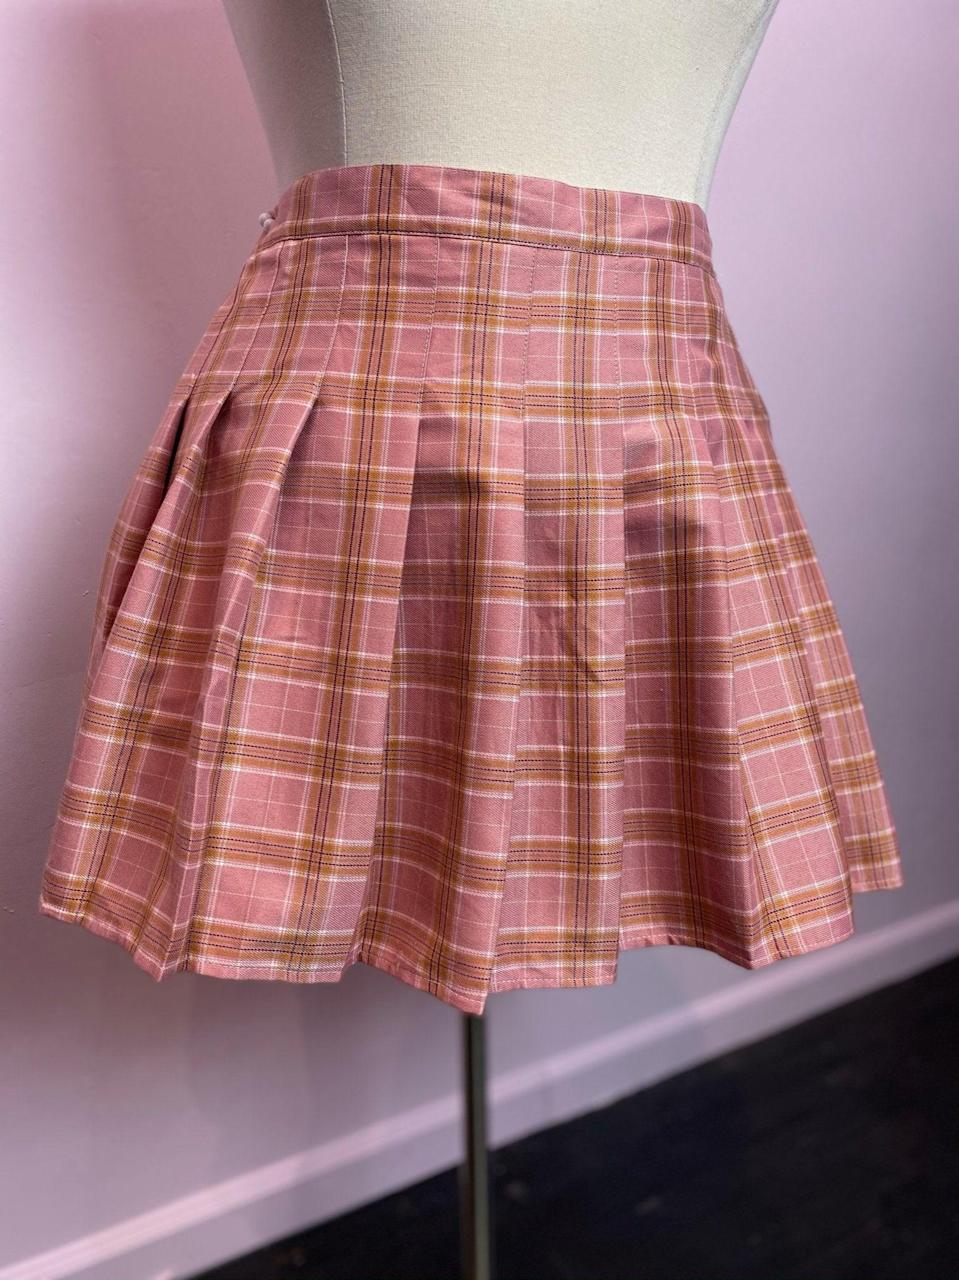 "<br><br><strong>Vintage</strong> Pink and Yellow Plaid Pleated Skort, Size 3X, $, available at <a href=""https://go.skimresources.com/?id=30283X879131&url=https%3A%2F%2Fwww.theplus-bus.com%2Fcollections%2Fall-new%2Fproducts%2Fskt"" rel=""nofollow noopener"" target=""_blank"" data-ylk=""slk:The Plus Bus"" class=""link rapid-noclick-resp"">The Plus Bus</a>"